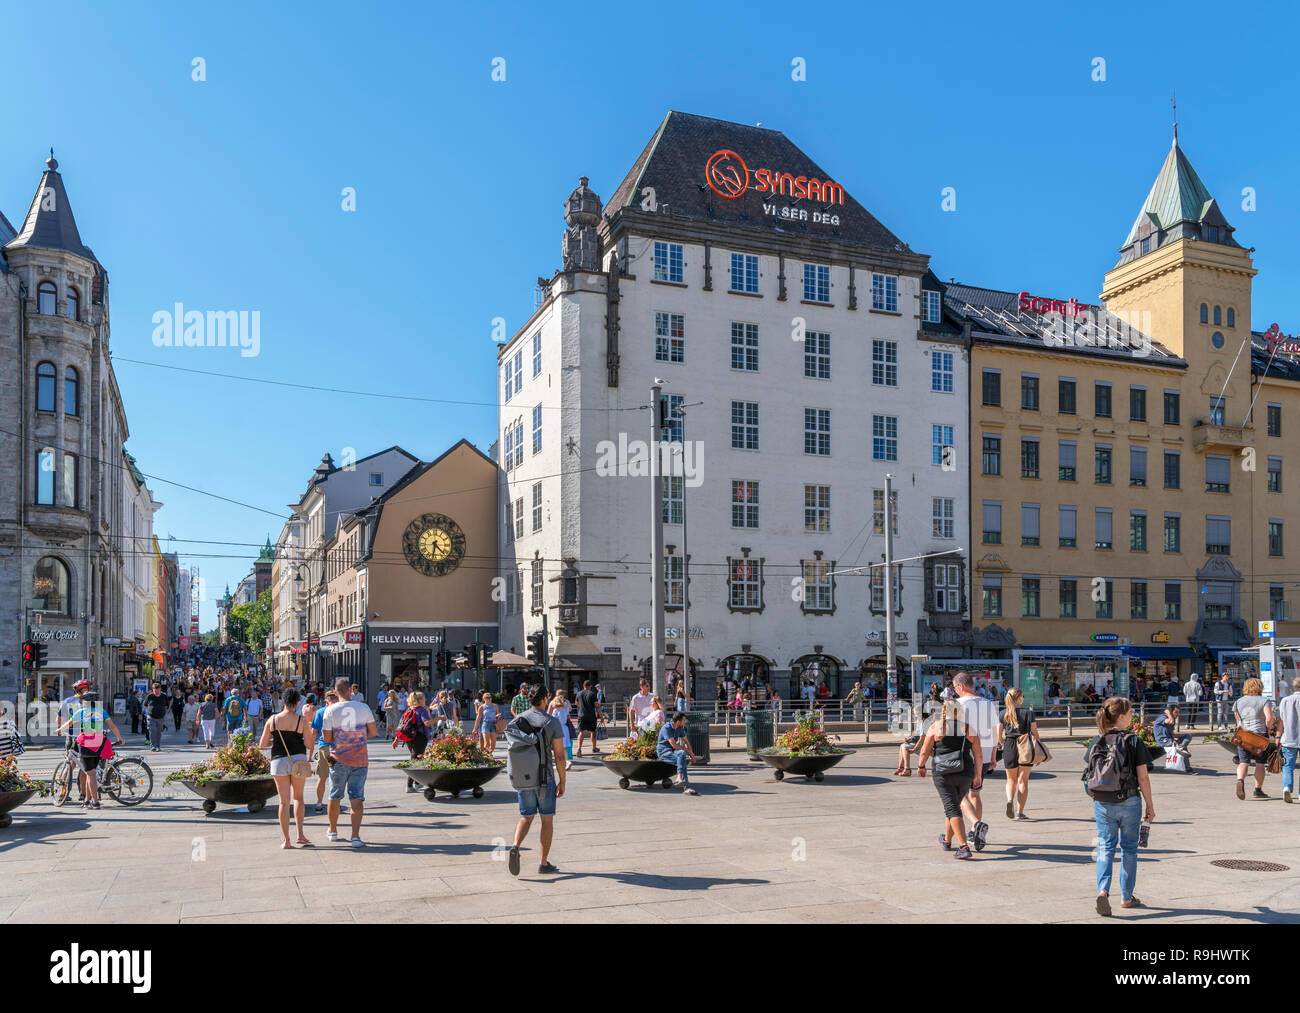 Square at Jernbanetorget in the city centre looking towards the bottom of Karl Johans gate, Oslo, Norway - Stock Image